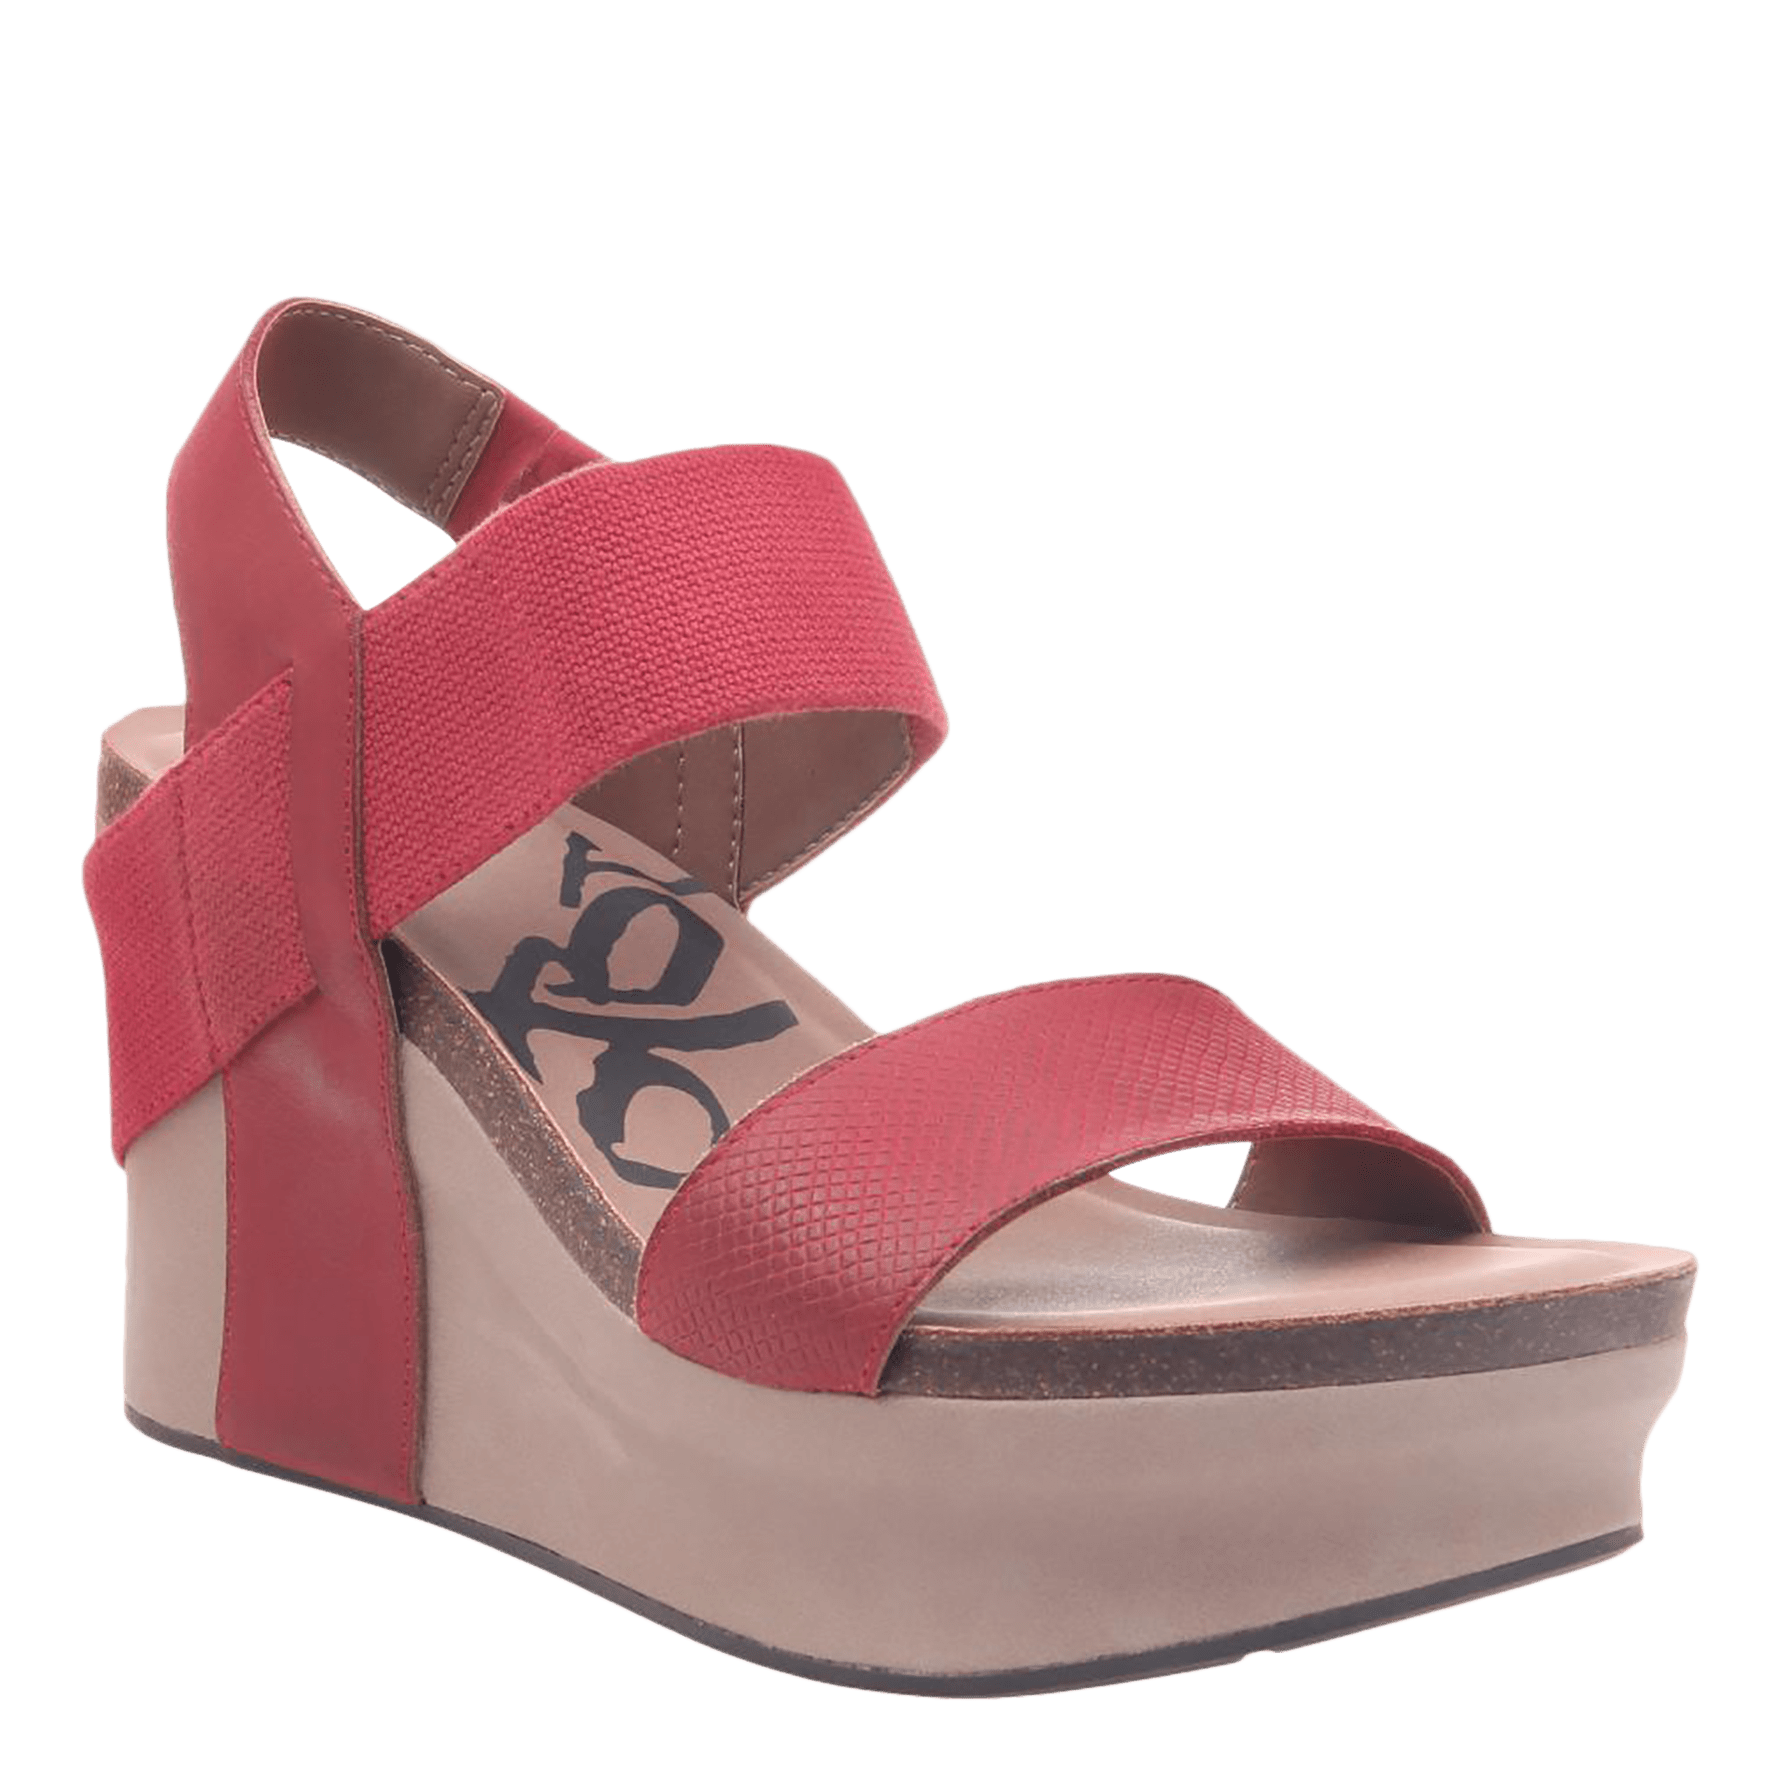 Bushnell in Red Wedge Sandals | Women's